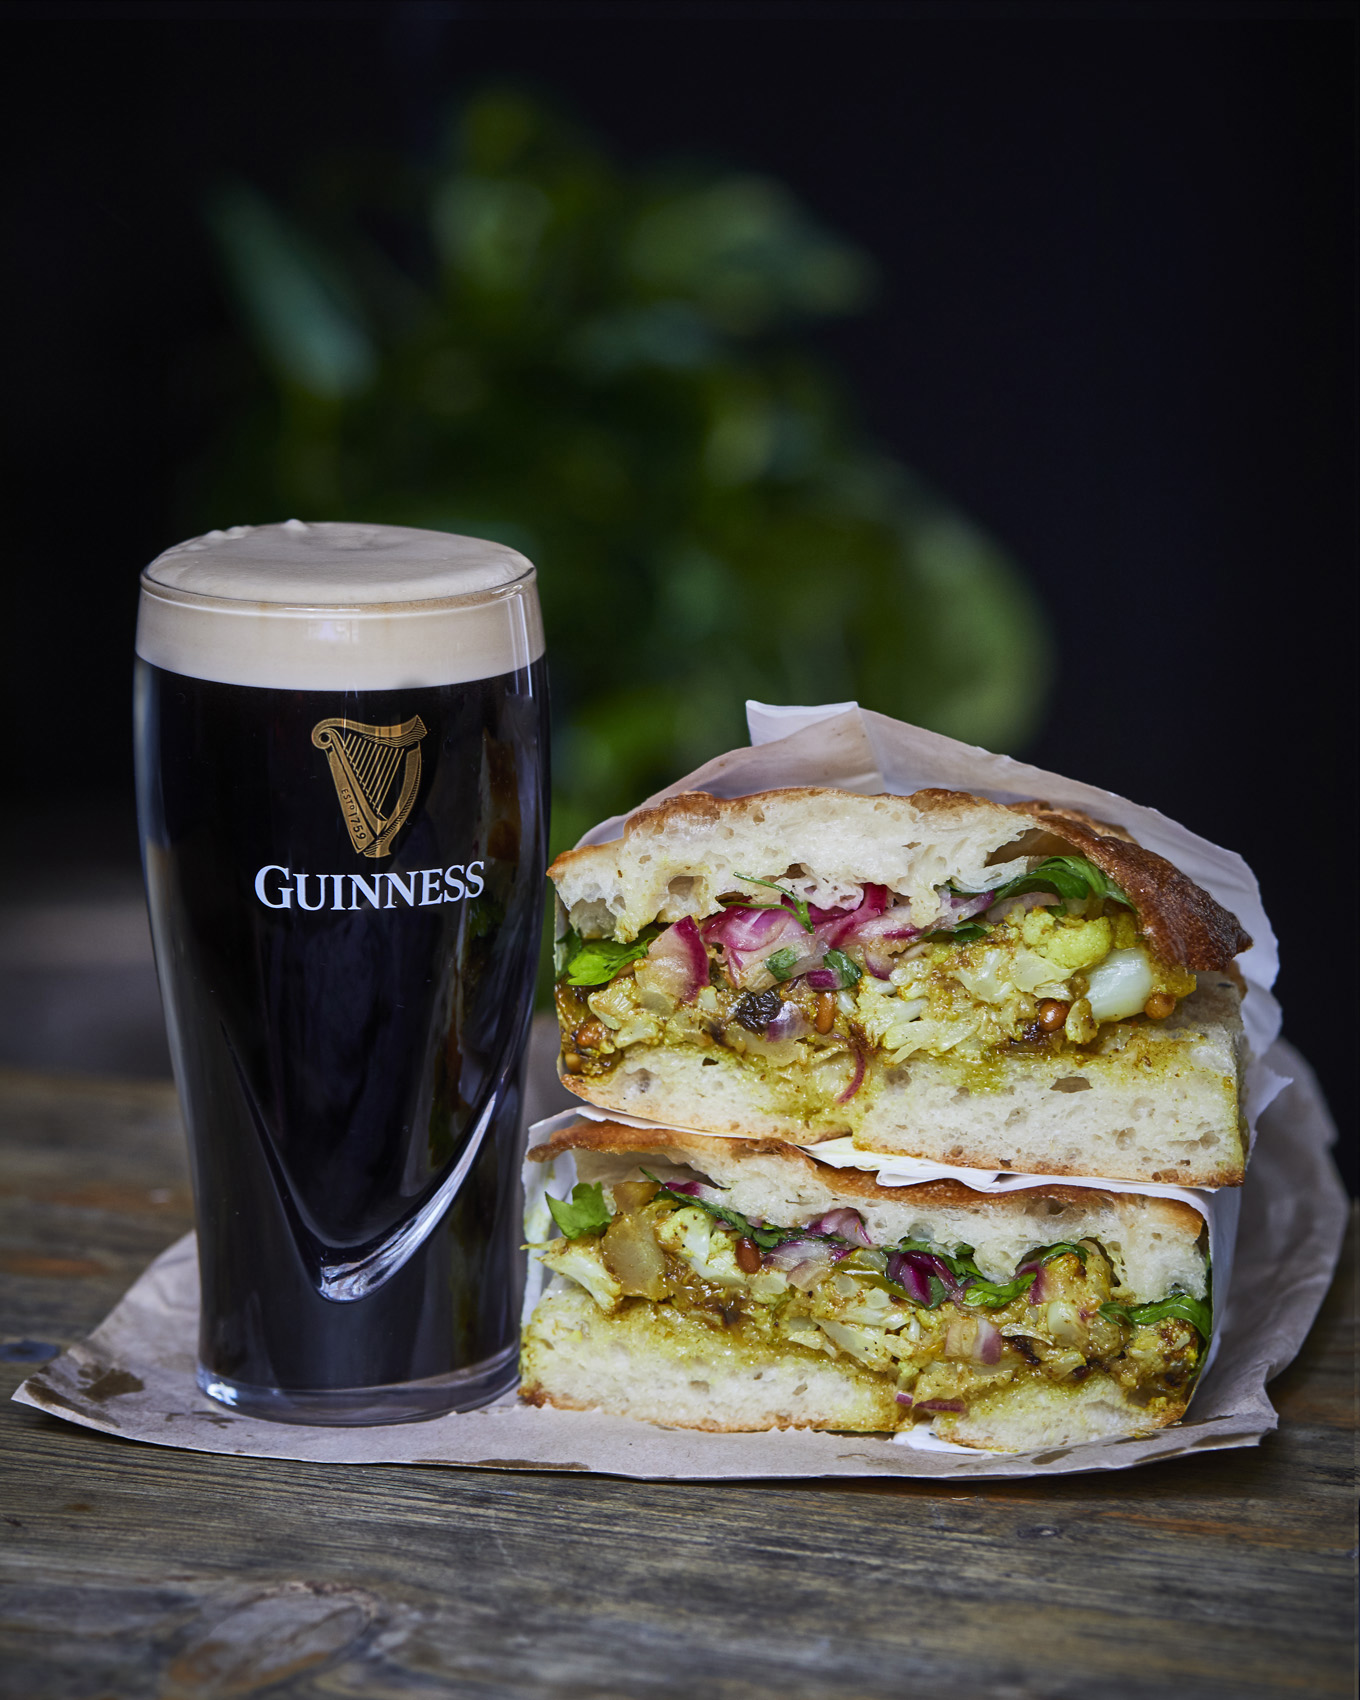 SteveRyan_Photographer_Drink_Beer_Guinness_Sandwich_02